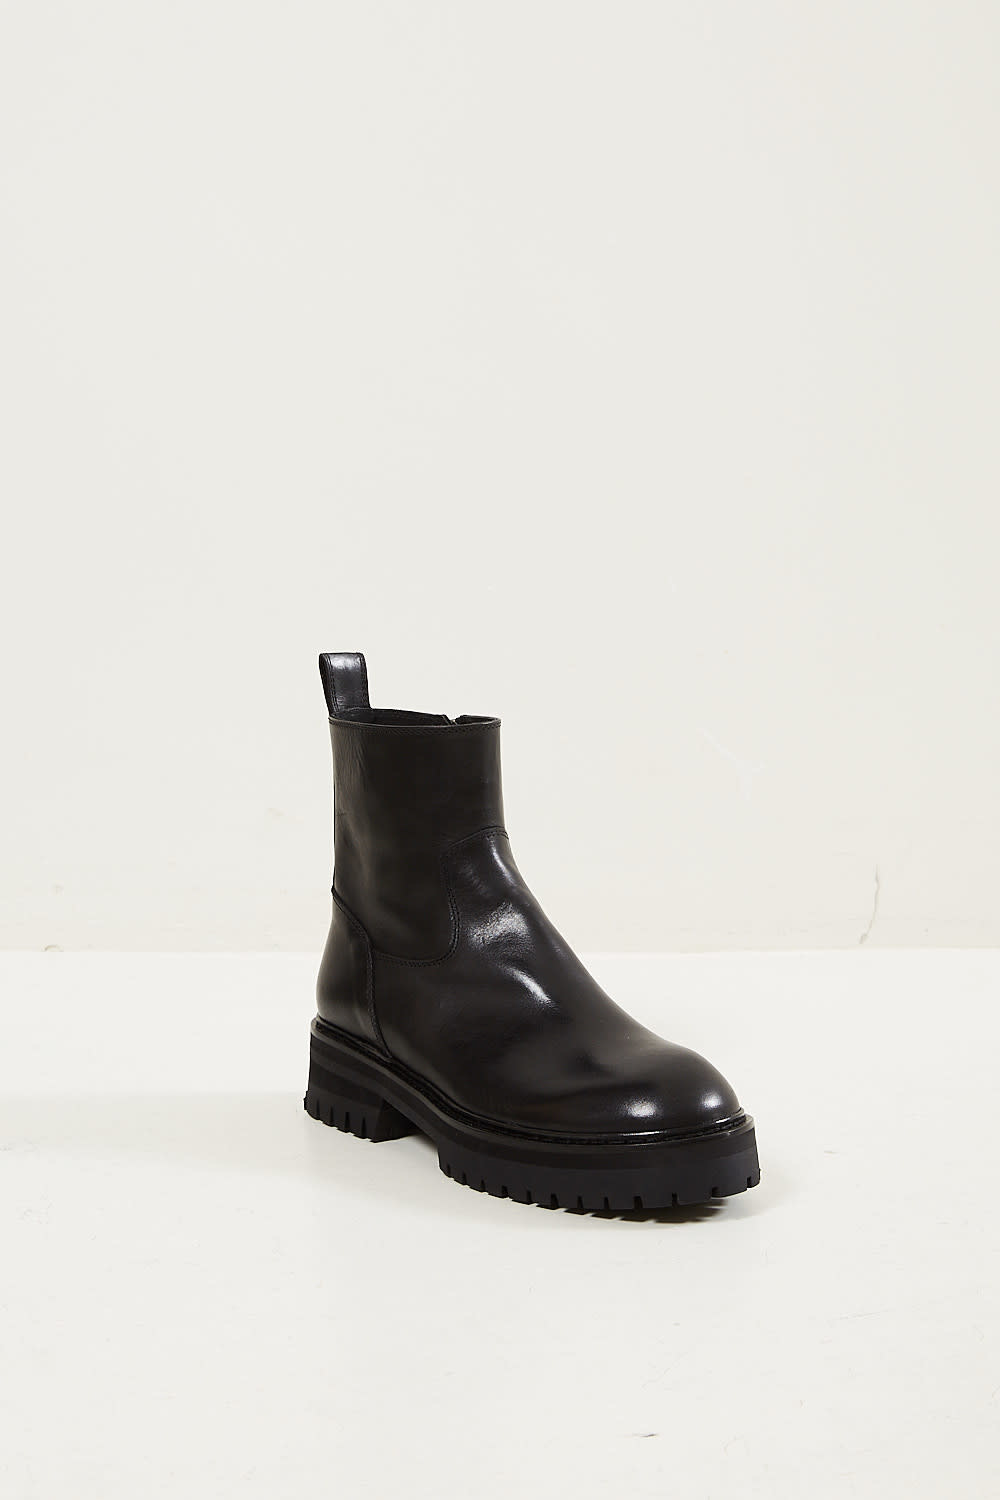 Ann Demeulemeester Tucson leather boots